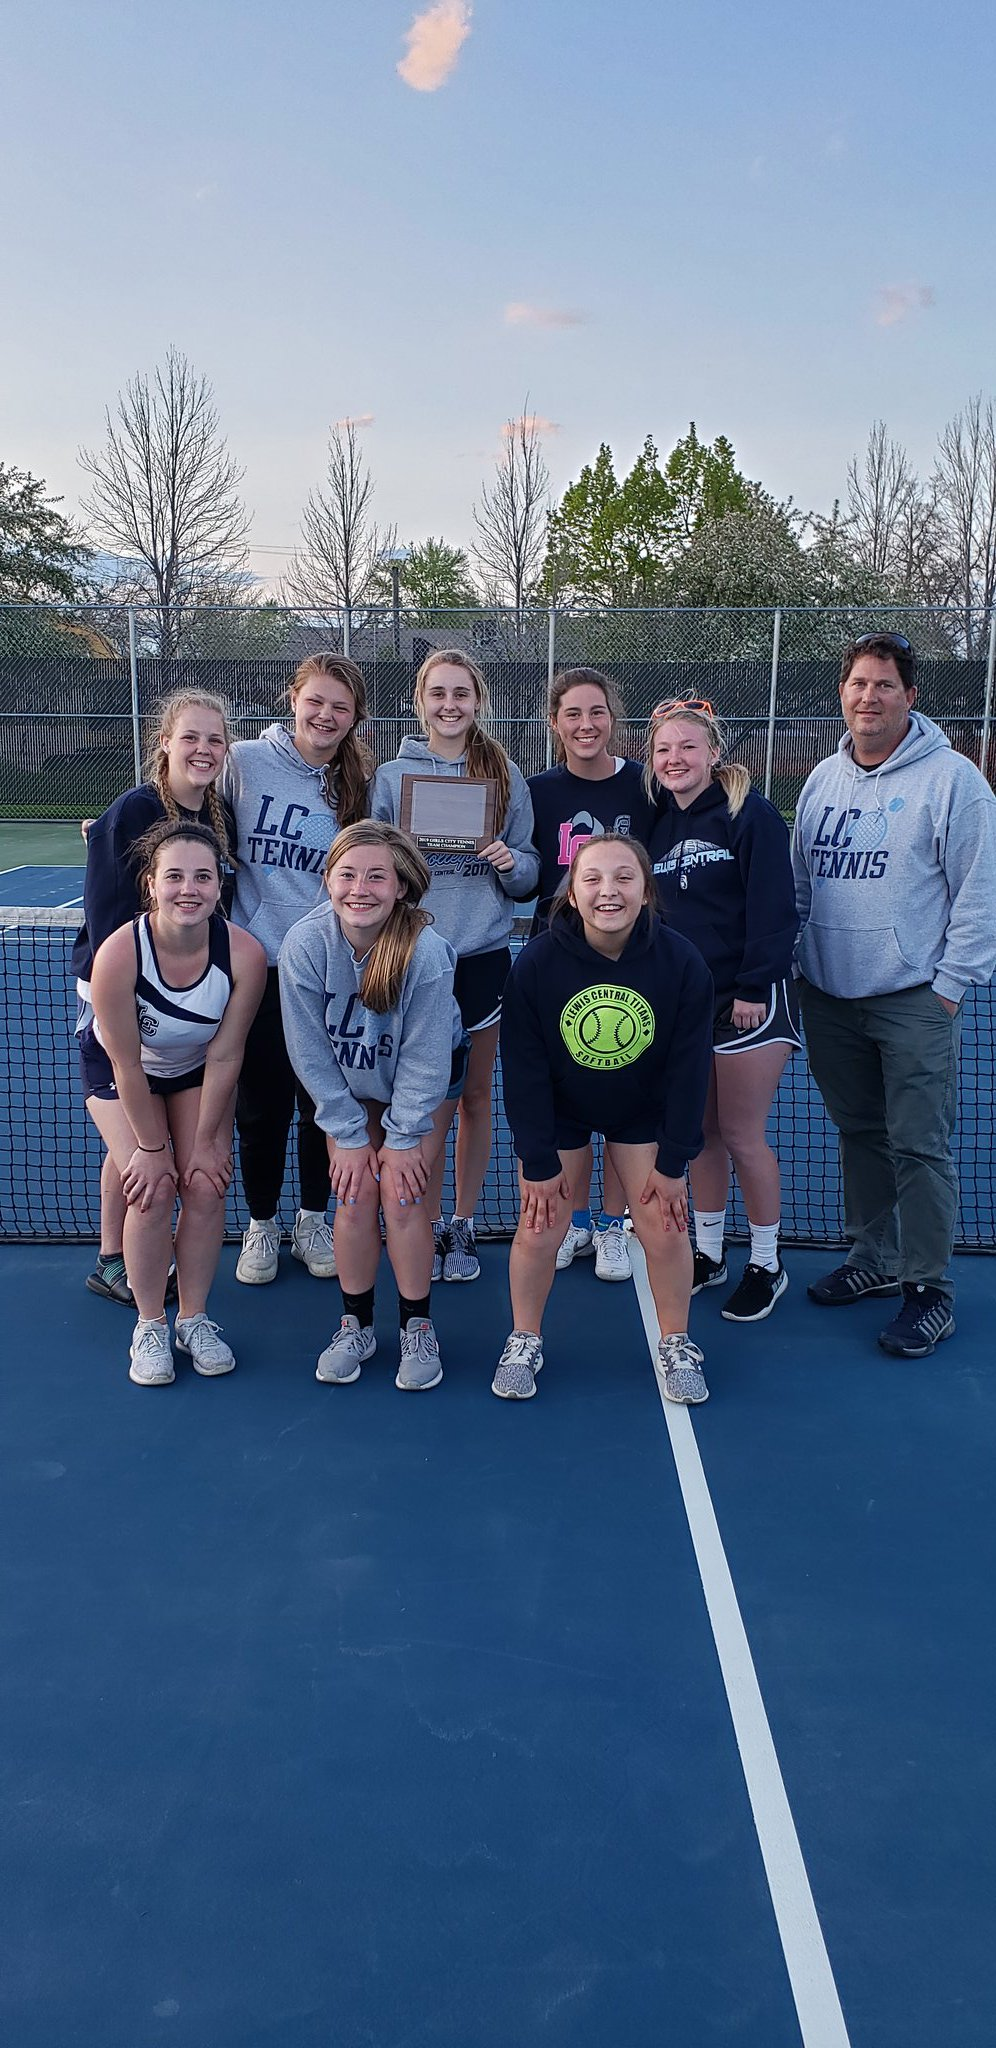 LC dominated the city tournament winning at #1, 2, 3 & 4 singles and 1 & 2 doubles.  @KMASports @LewisCentralCSD @KWhiteOWH @nonpareilonline https://t.co/UFr2wNAXDC